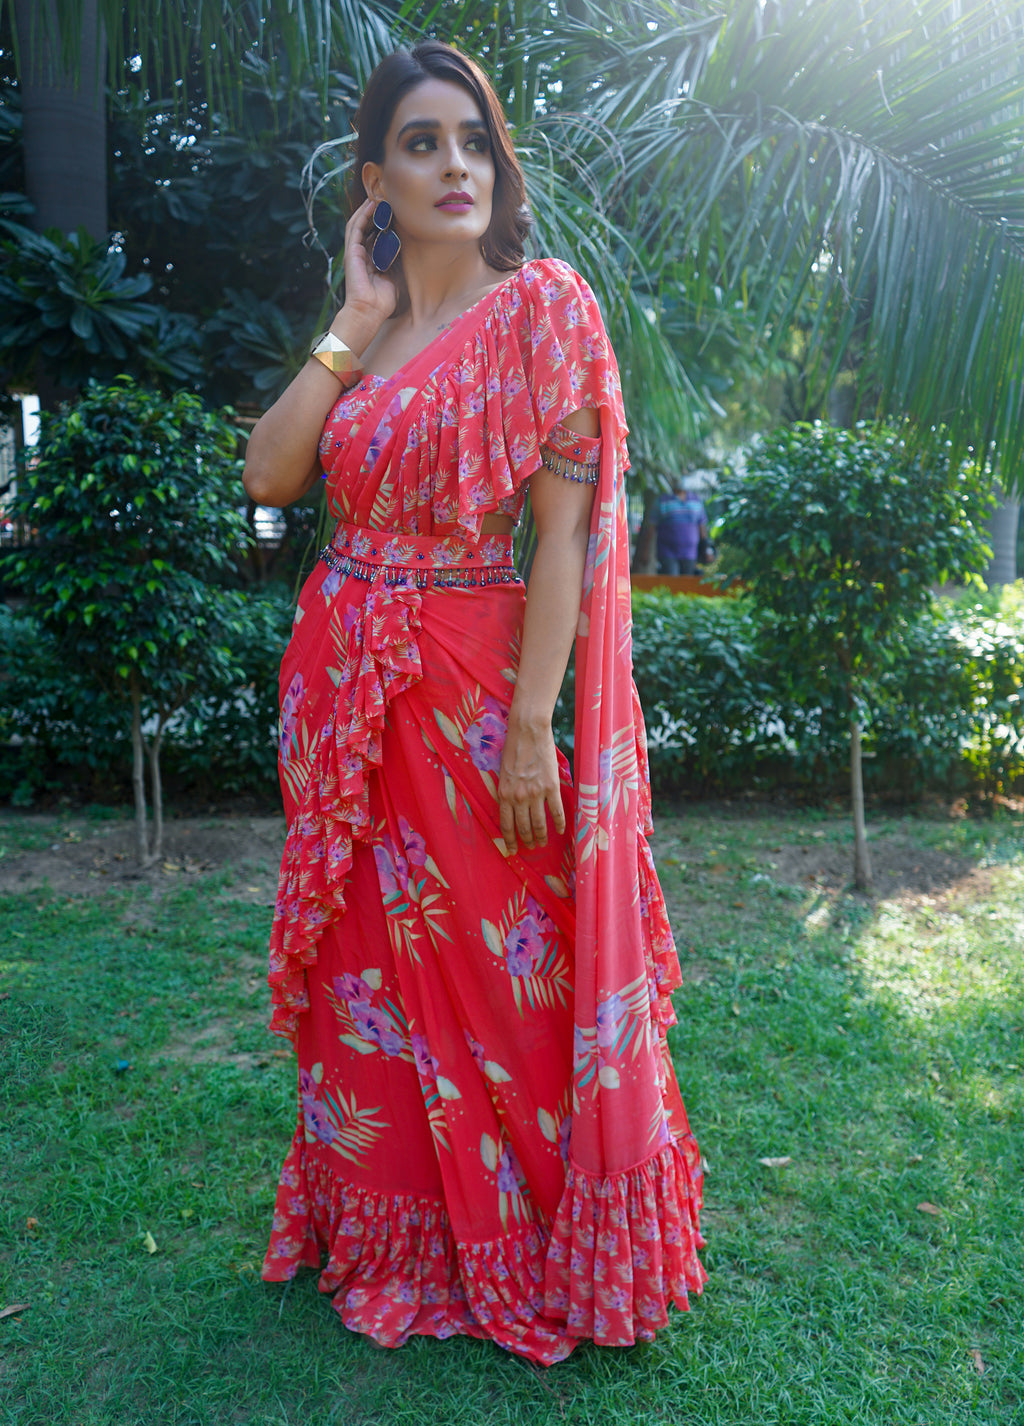 Red Stitched Off Shoulder Saree